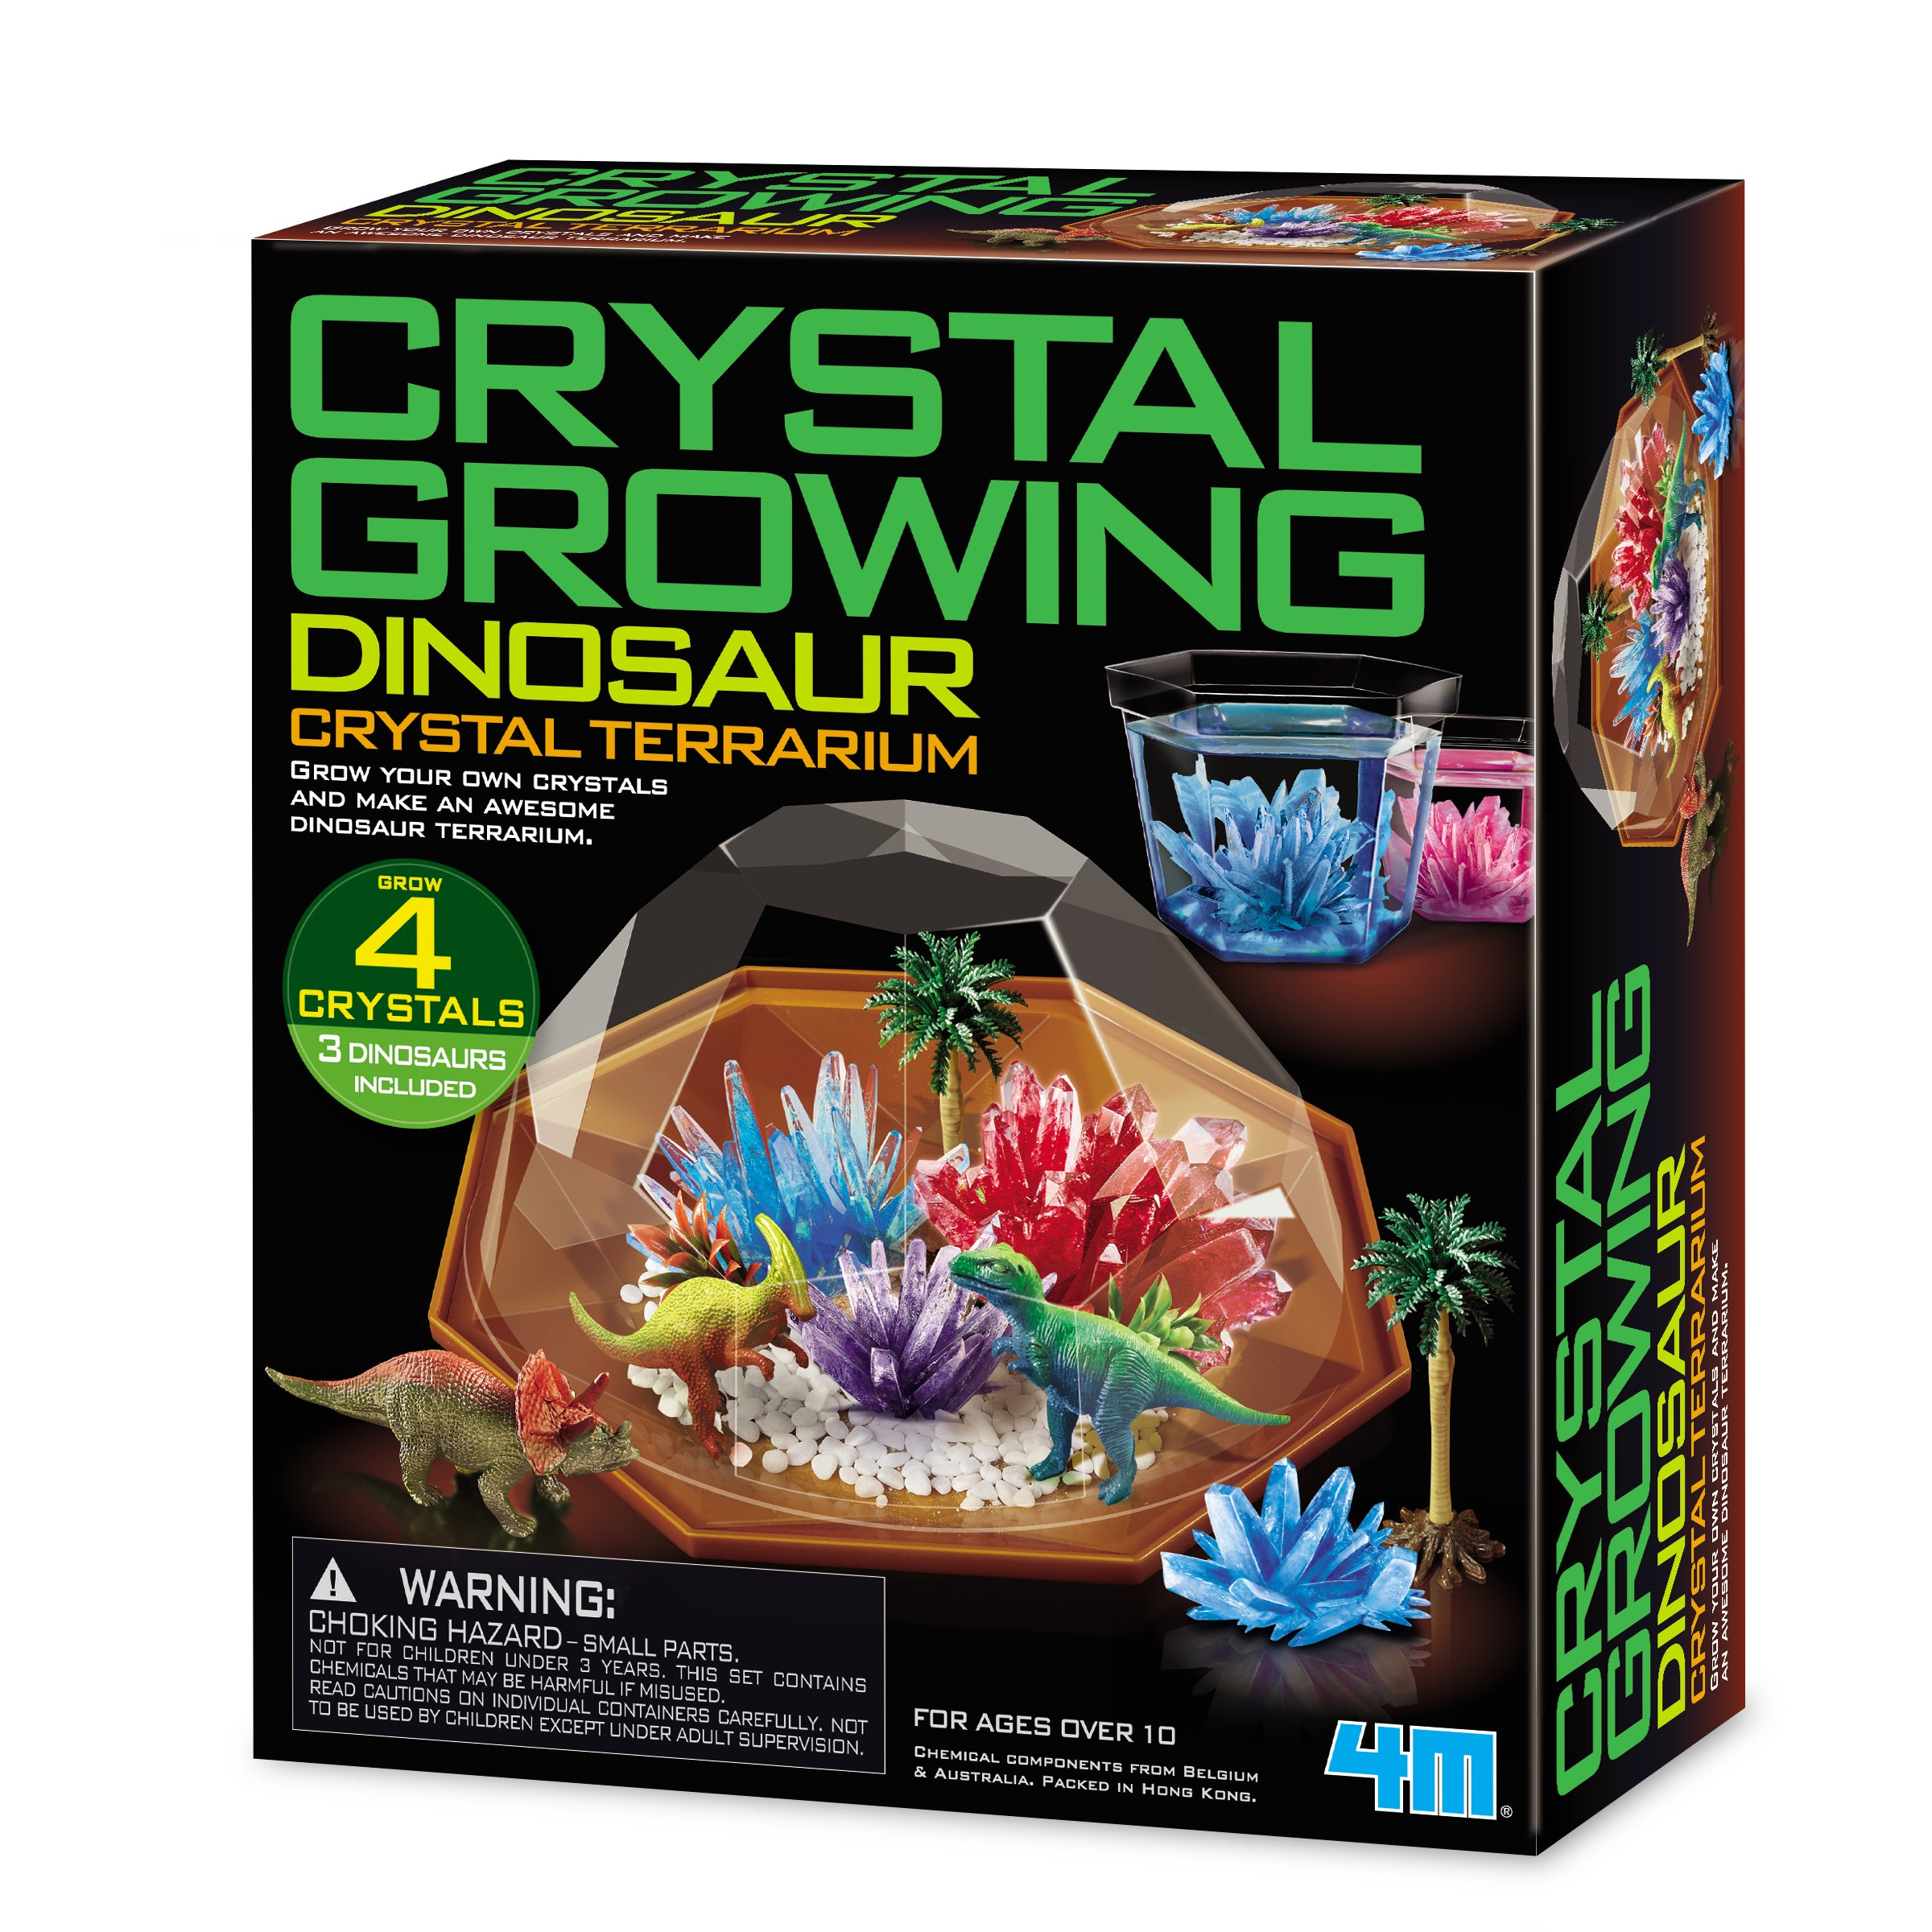 Dino Crystal Terrarium Imaginuity Play With A Purpose